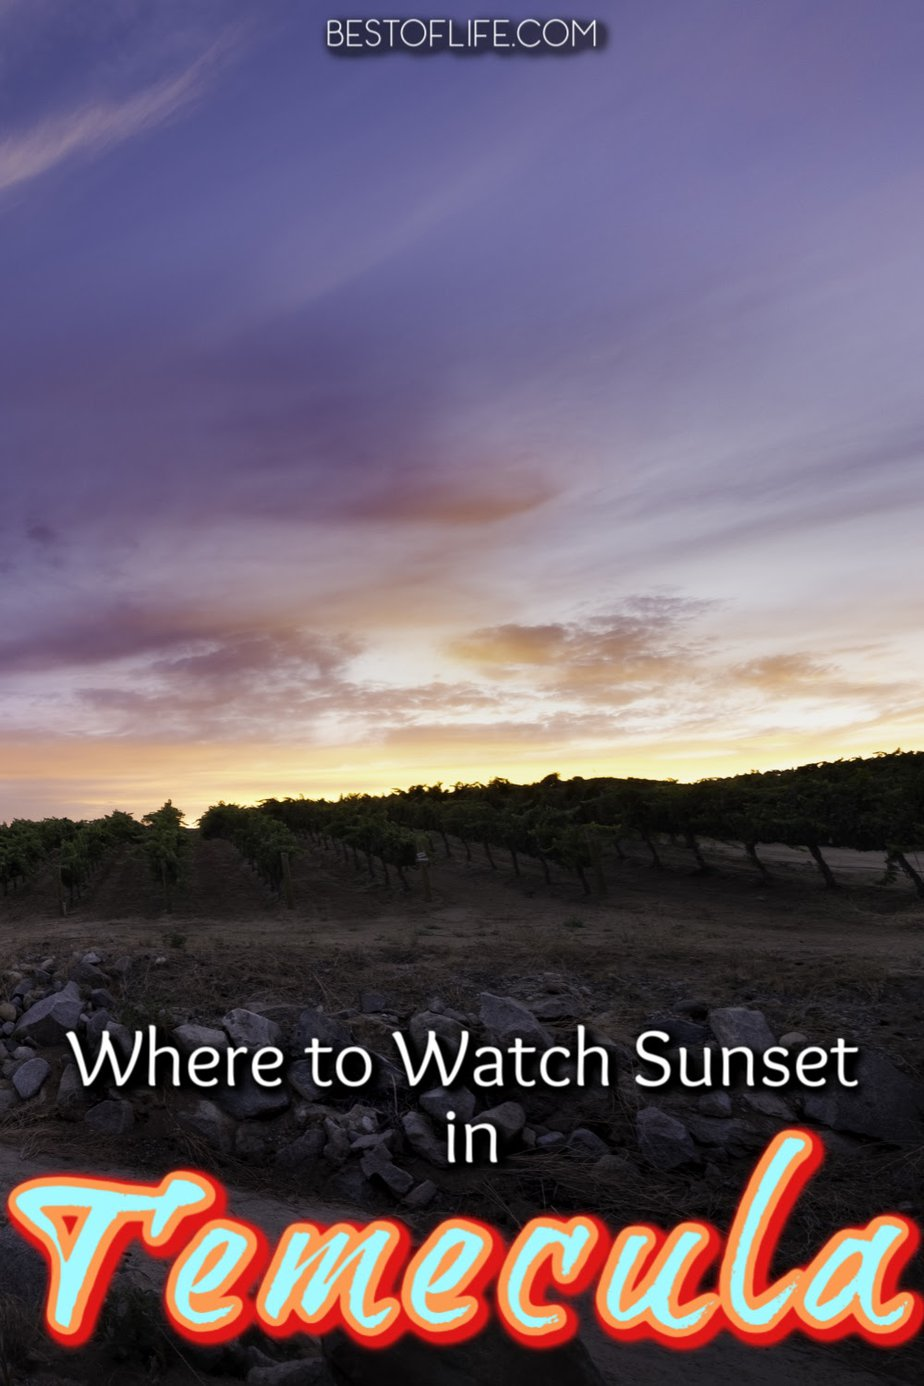 Watching the sunset in Temecula is the perfect way to end any night out in Southern California's very own wine country. Wineries in Temecula | Where to Watch the Sunset in California | Temecula Travel Tips #travel #temecula #wine